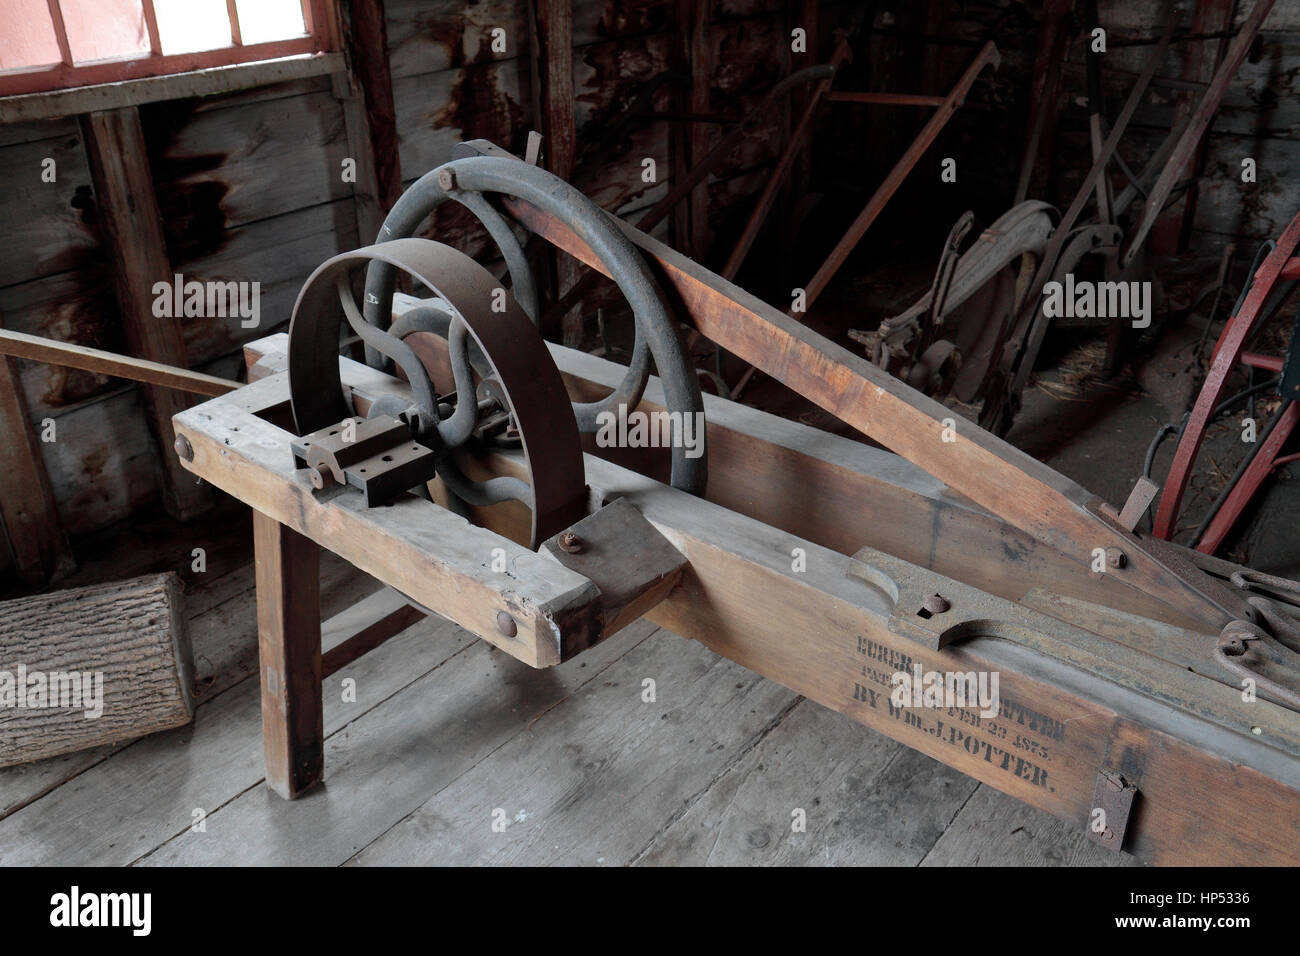 The Eureka corn cutter by WJ Potter on display n the Hancock Shaker Village, Hancock, Massachusetts, United States. - Stock Image